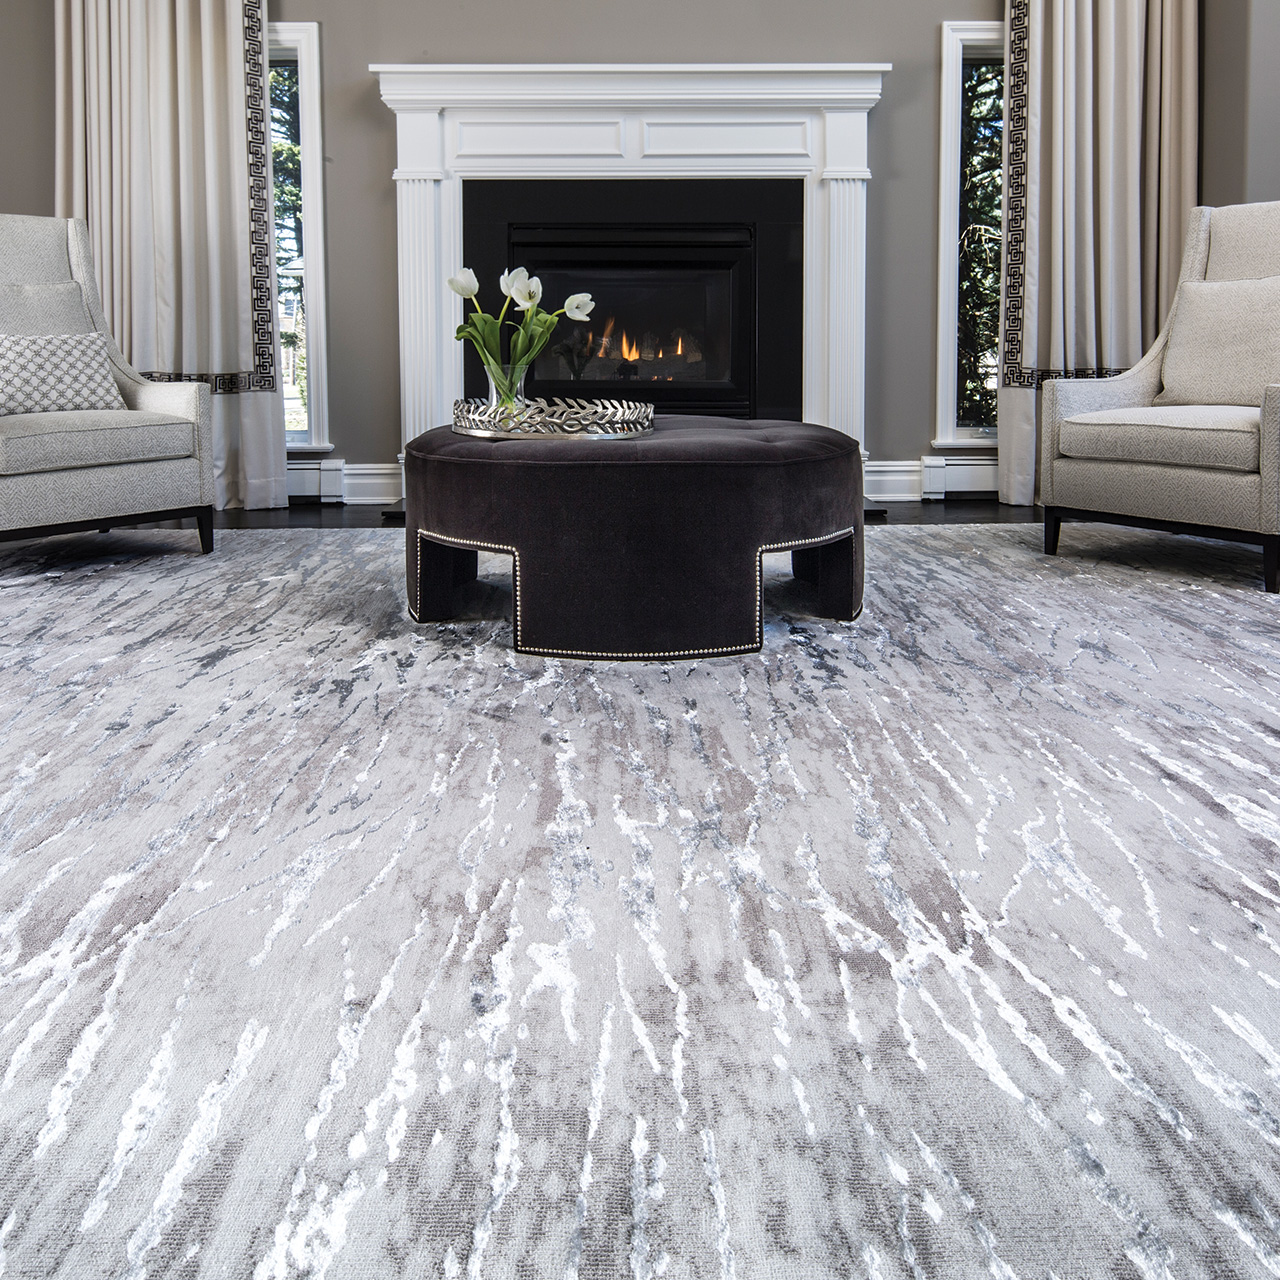 tidescollection-ripplewater-stanton-atelier-2019-at-georgia-carpet-industries-dalton-ga.jpg